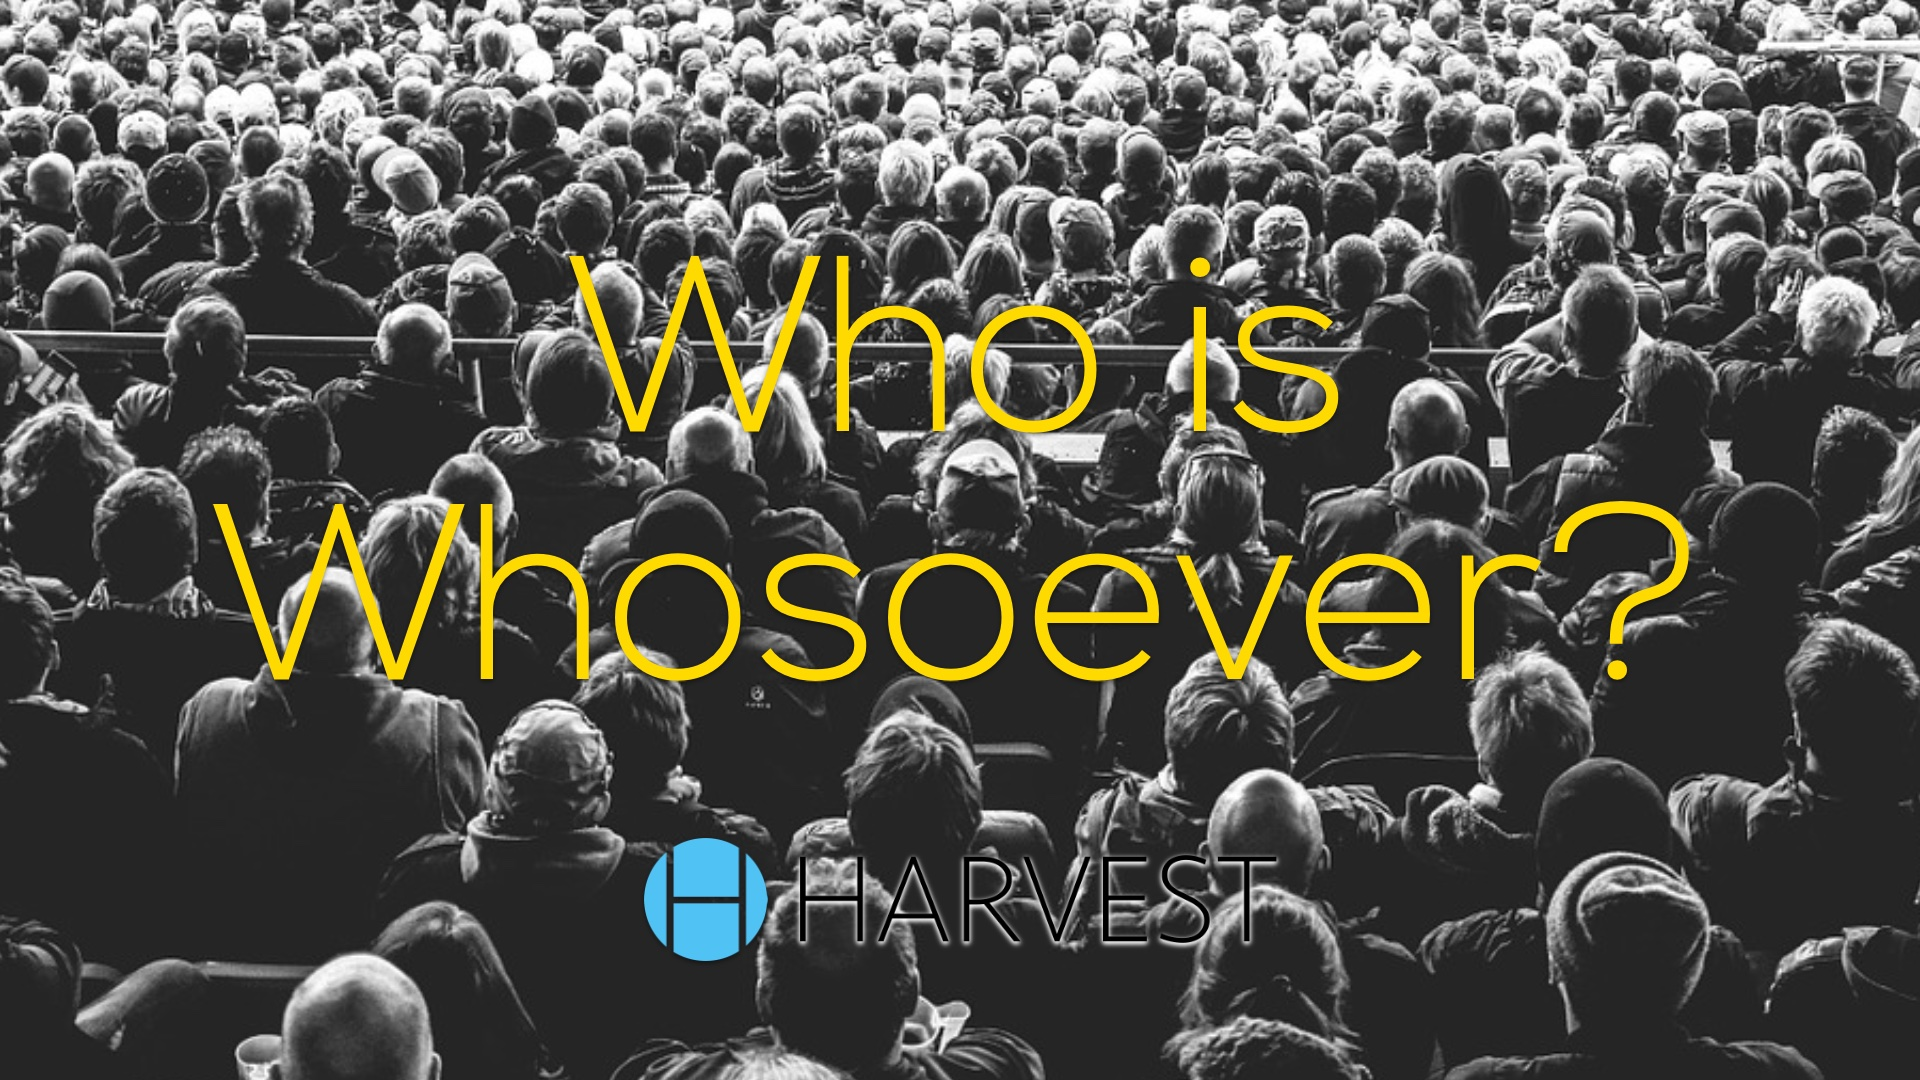 Who is Whosoever?